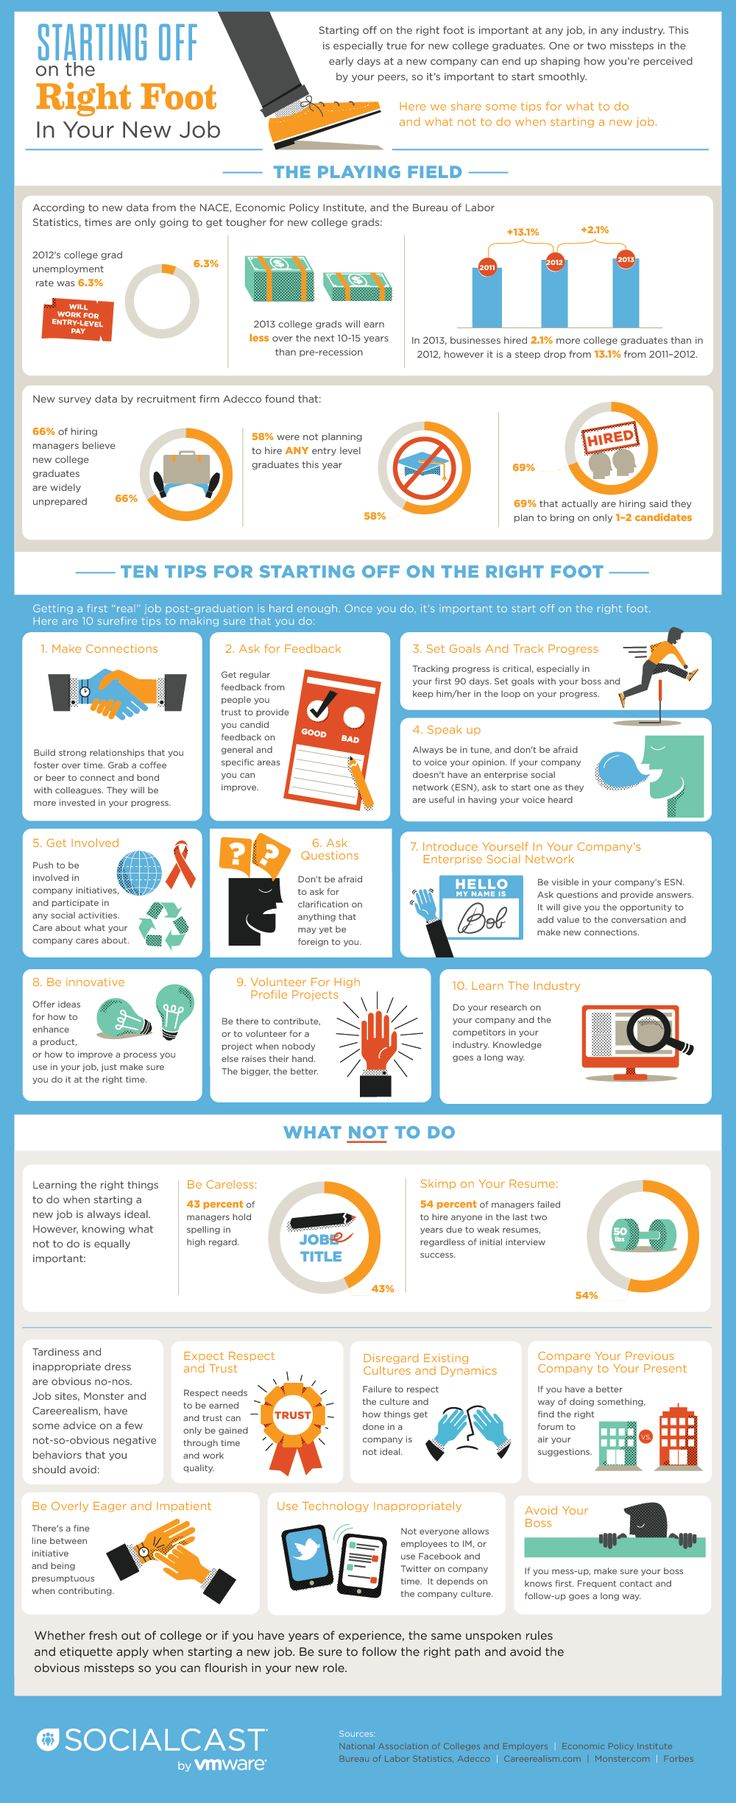 Justo lo que hice en #HP .The Do's And Don'ts of Starting A New Job https://twitter.com/NeilVenketramen